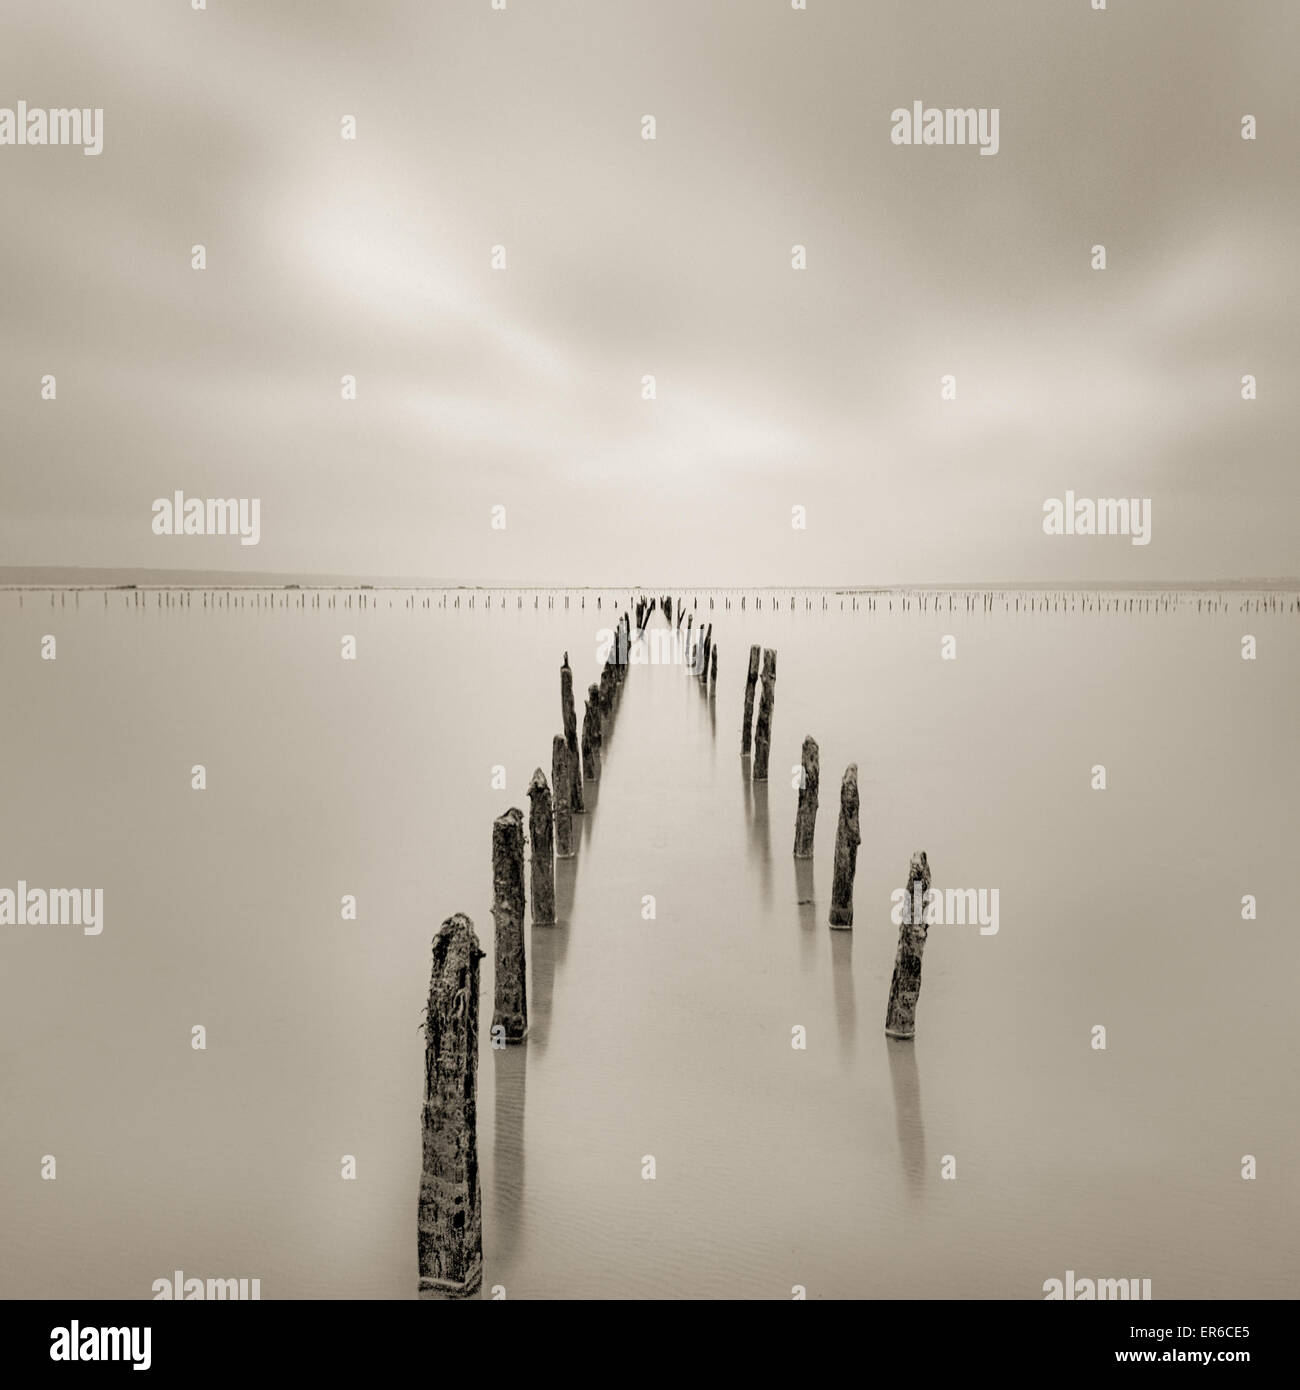 Poles in the water - calmness and silence concept - Stock Image